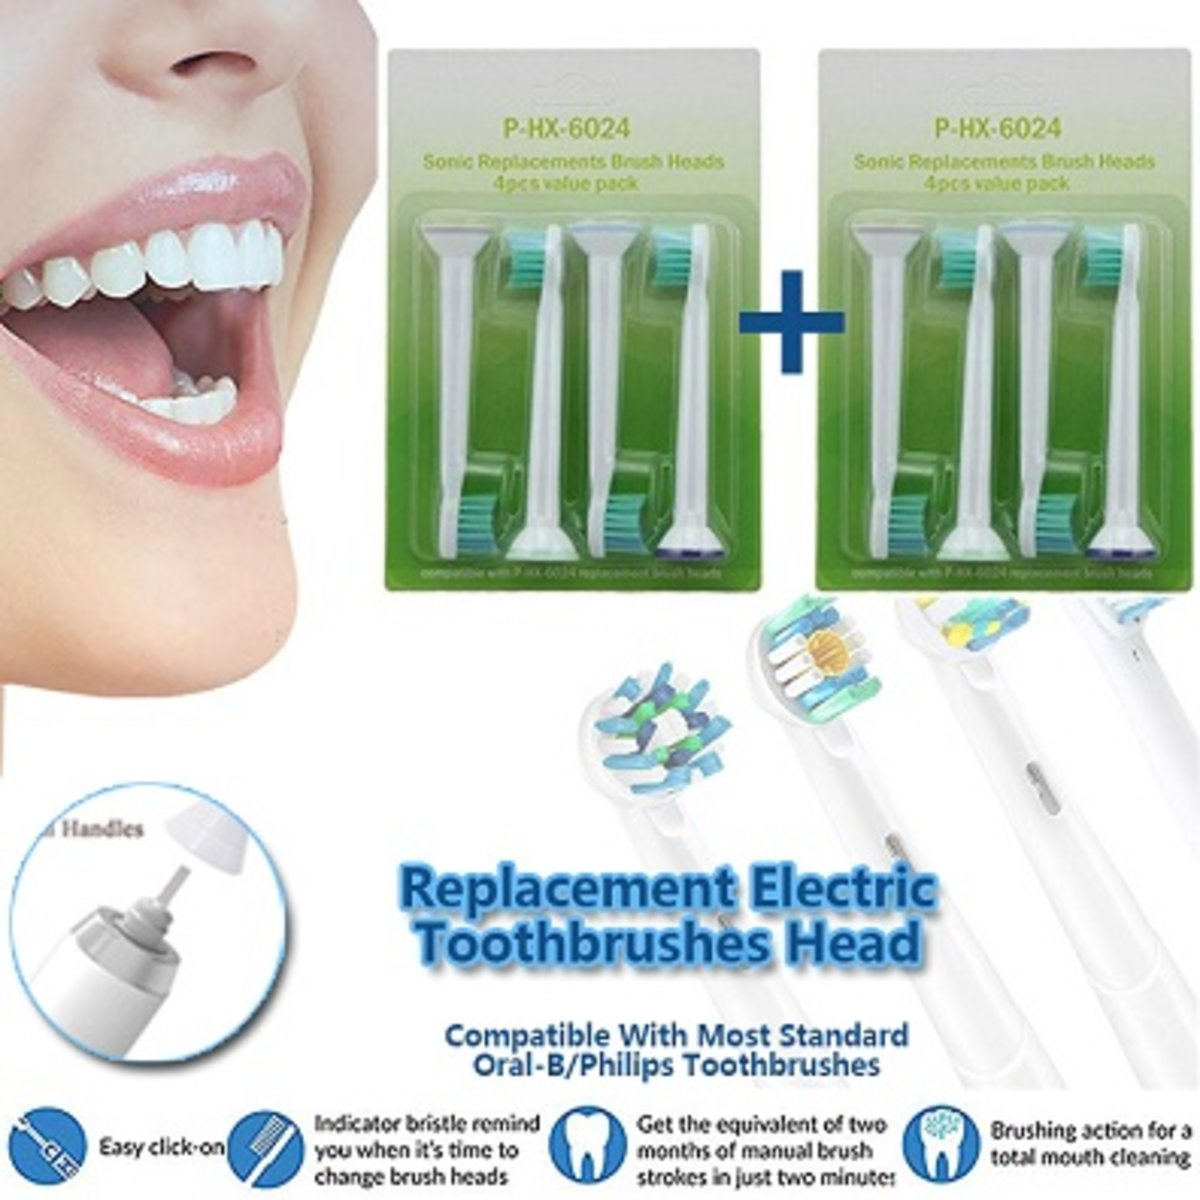 1+1 Replacement Eletric Toothbrushes Head, HX-6024, 2 sets